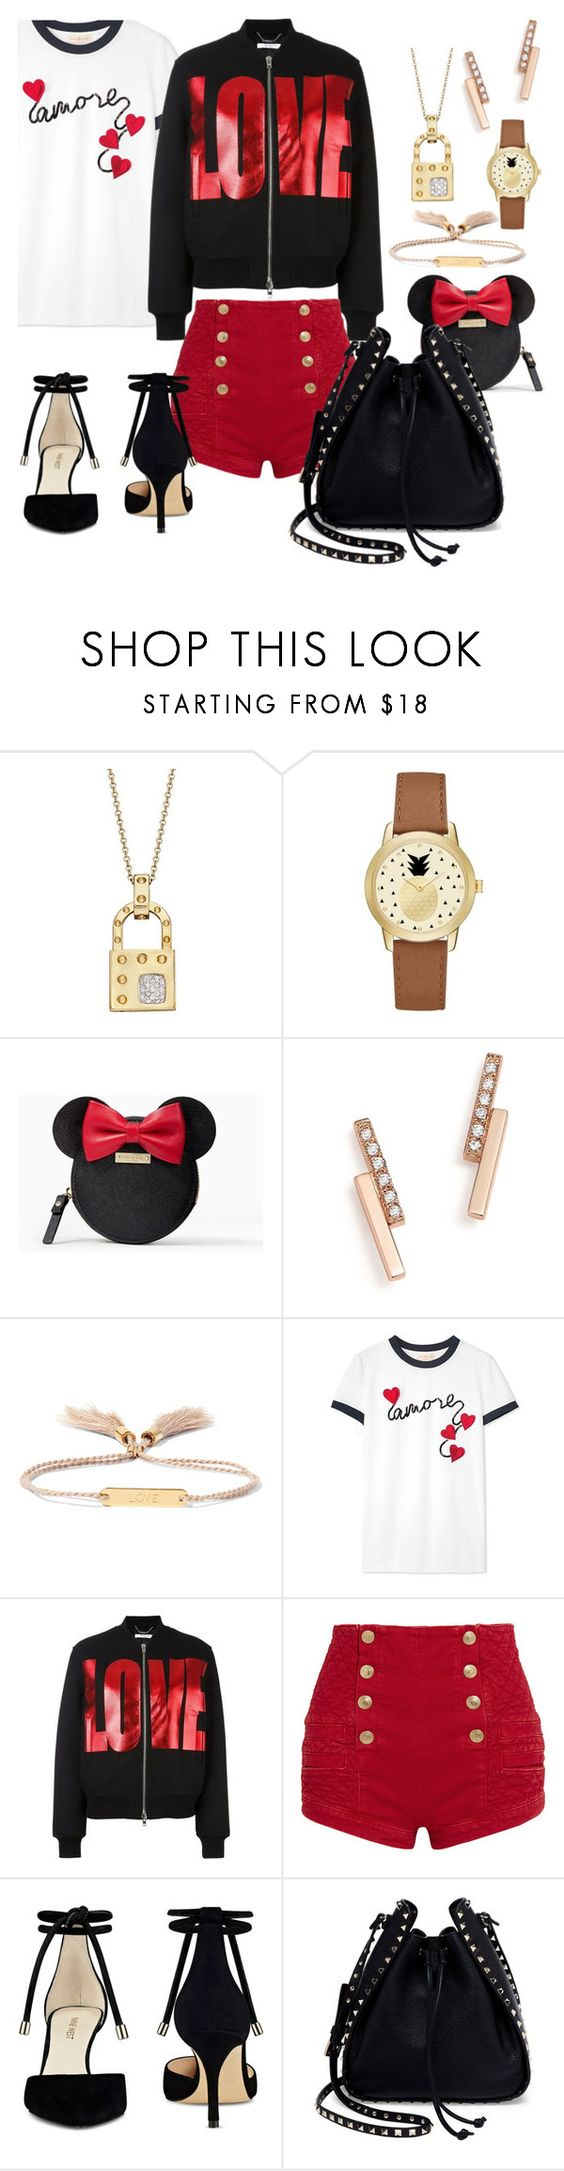 """""""Smooth Sunday"""" by velvy ❤ liked on Polyvore featuring Roberto Coin, Jessica Carlyle, Kate Spade, ZoÃ« Chicco, Chloé, Tory Burch, Givenchy, Pierre Balmain, Nine West and Valentino"""